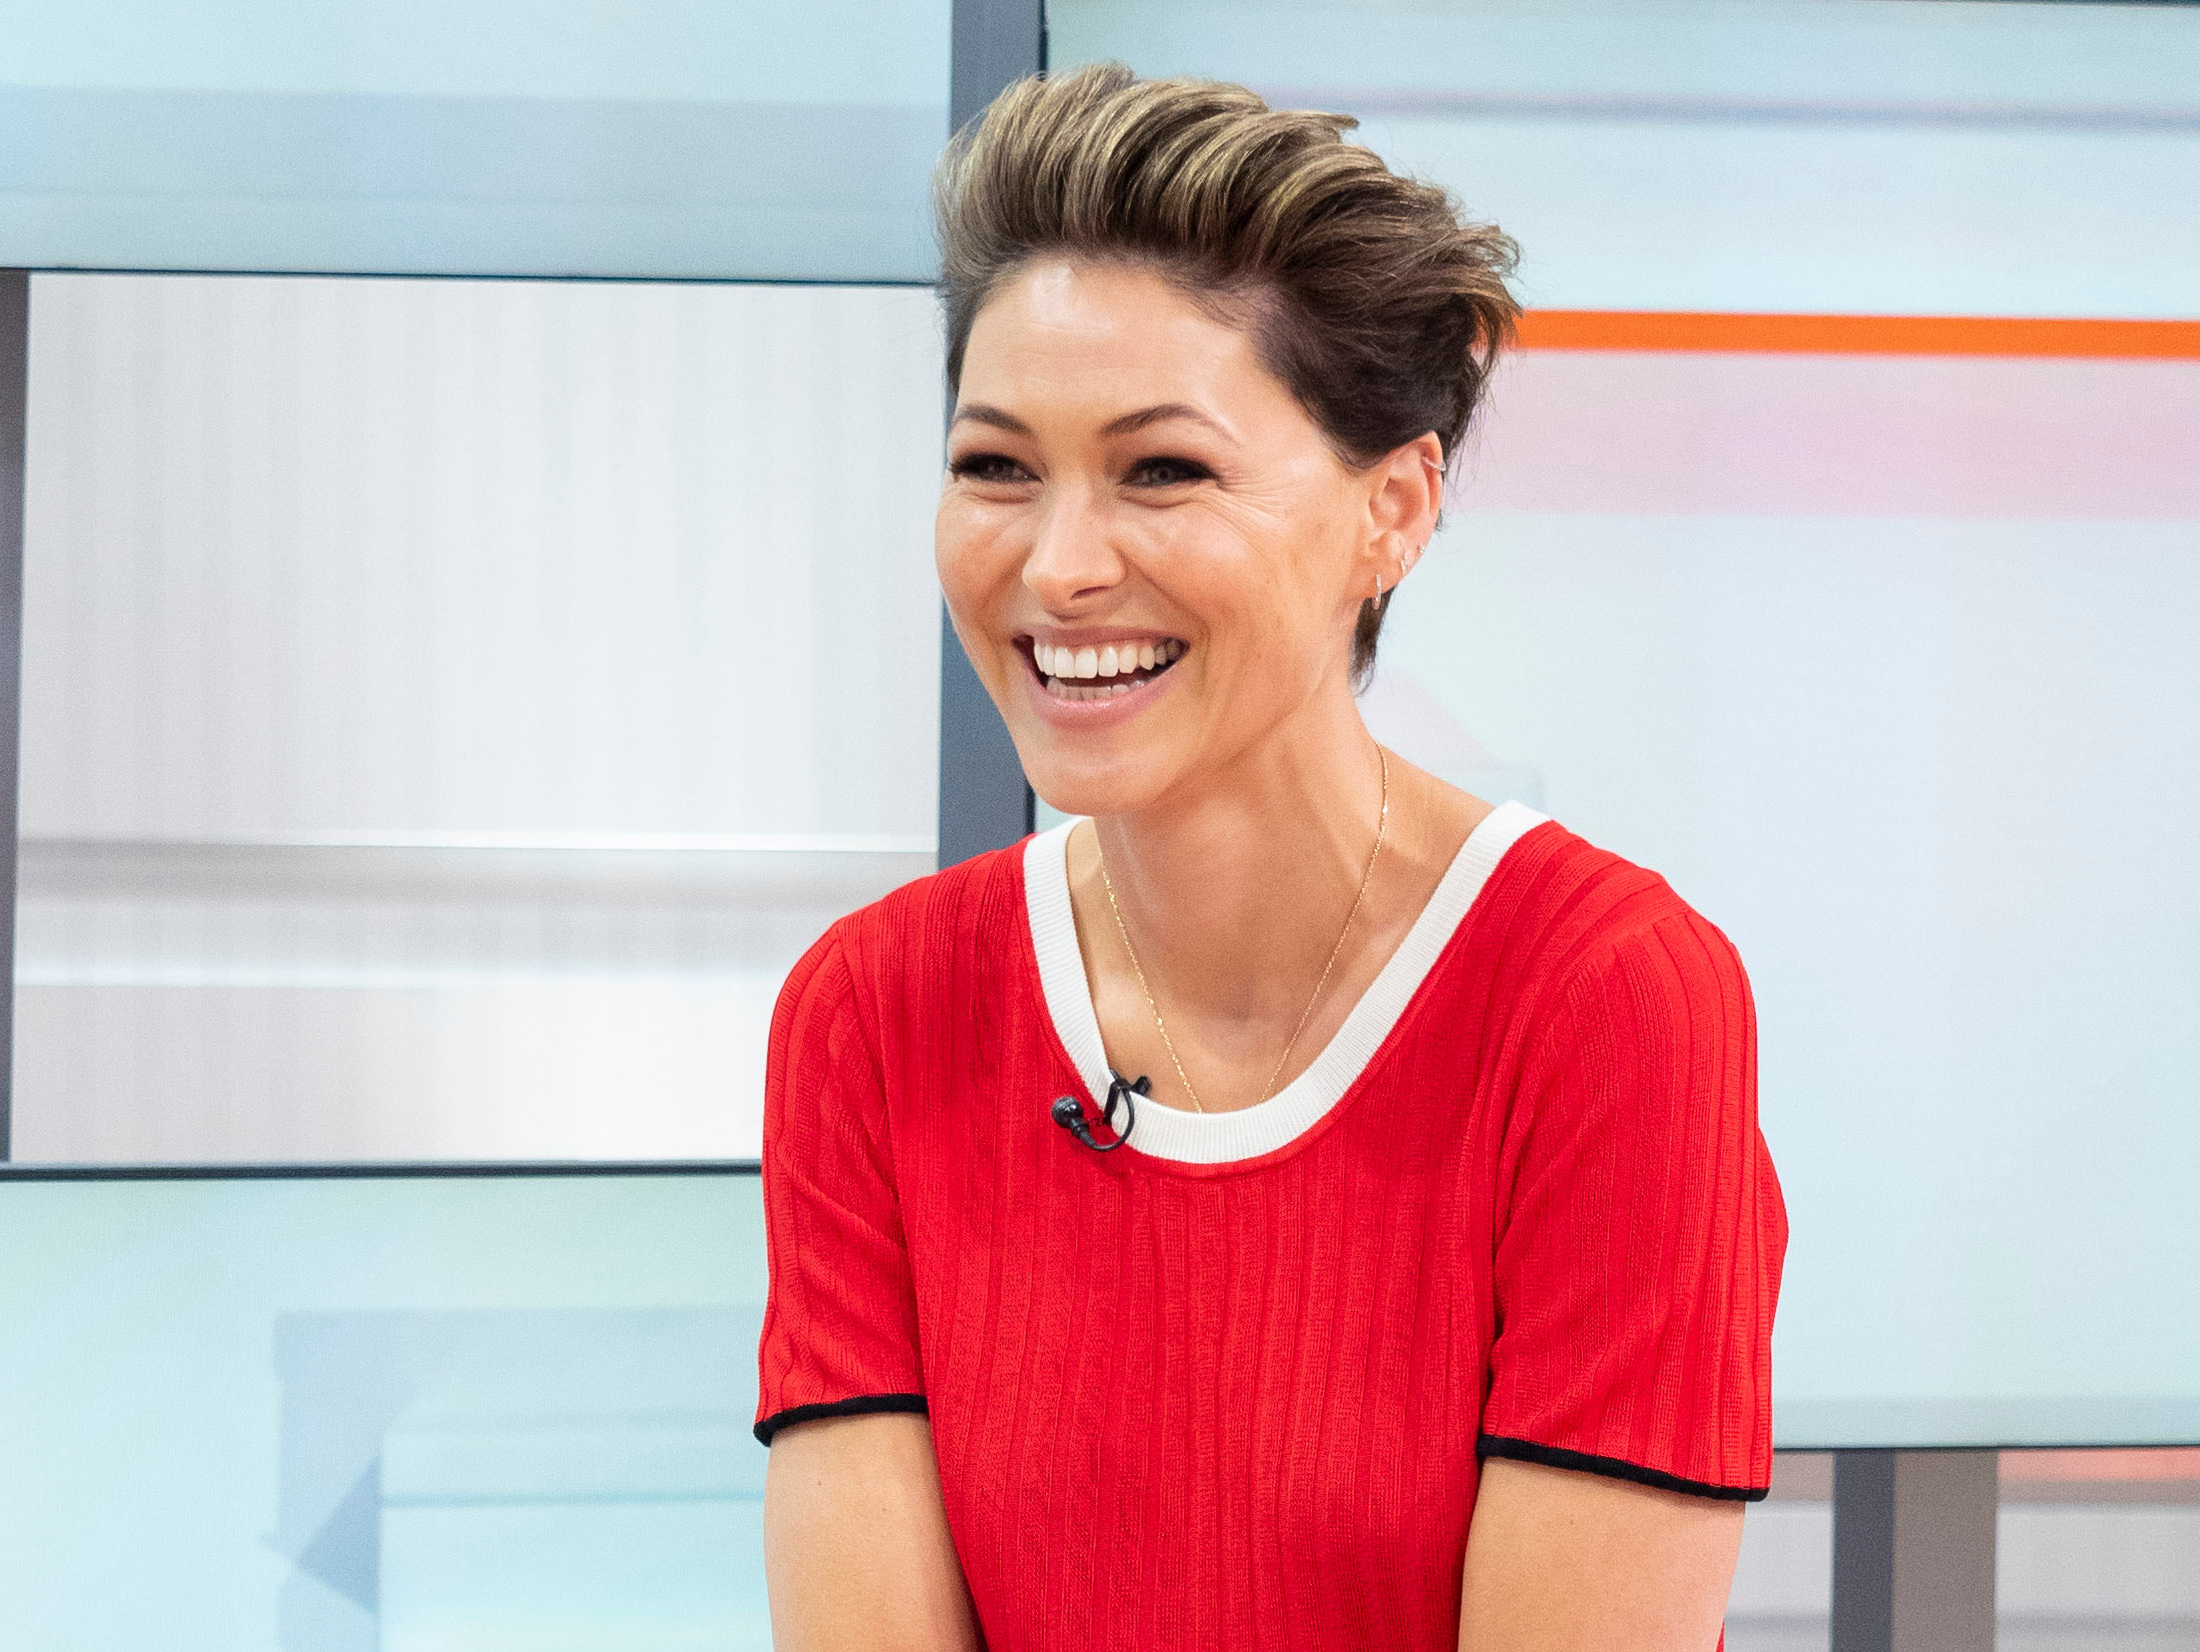 WOW! See Big Brother presenter Emma Willis' dramatic transformation in pictures